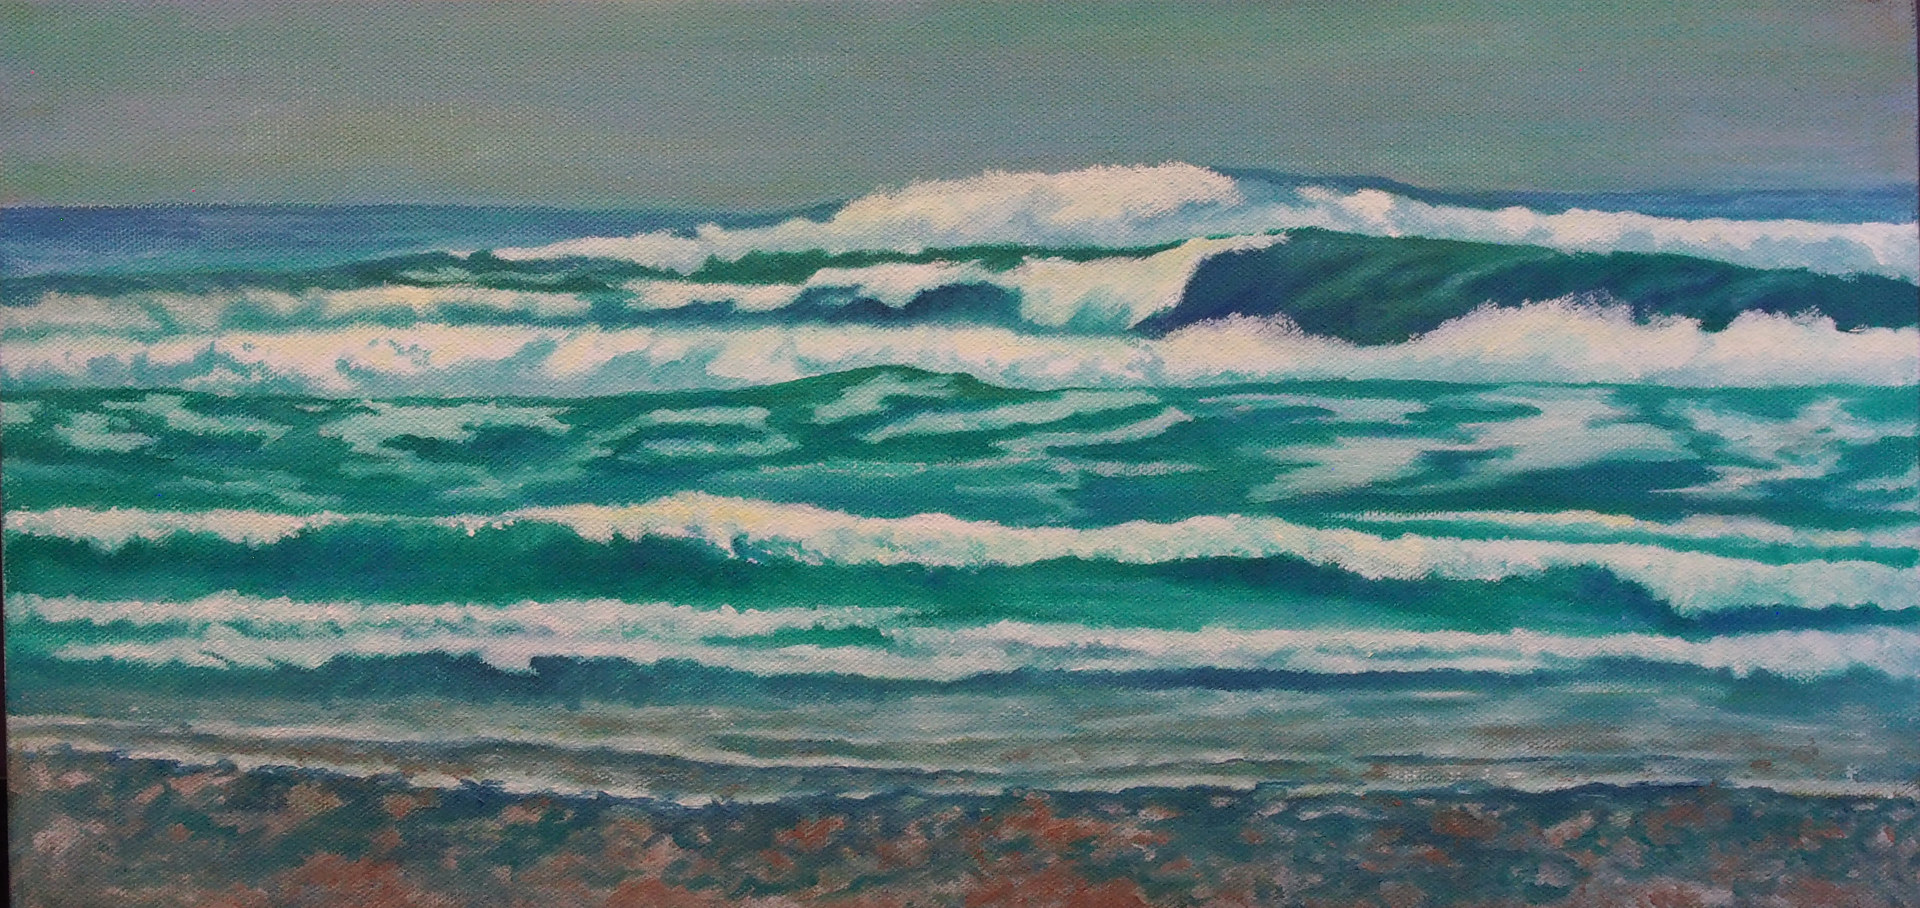 Oil painting Waves by Brent Ciccone